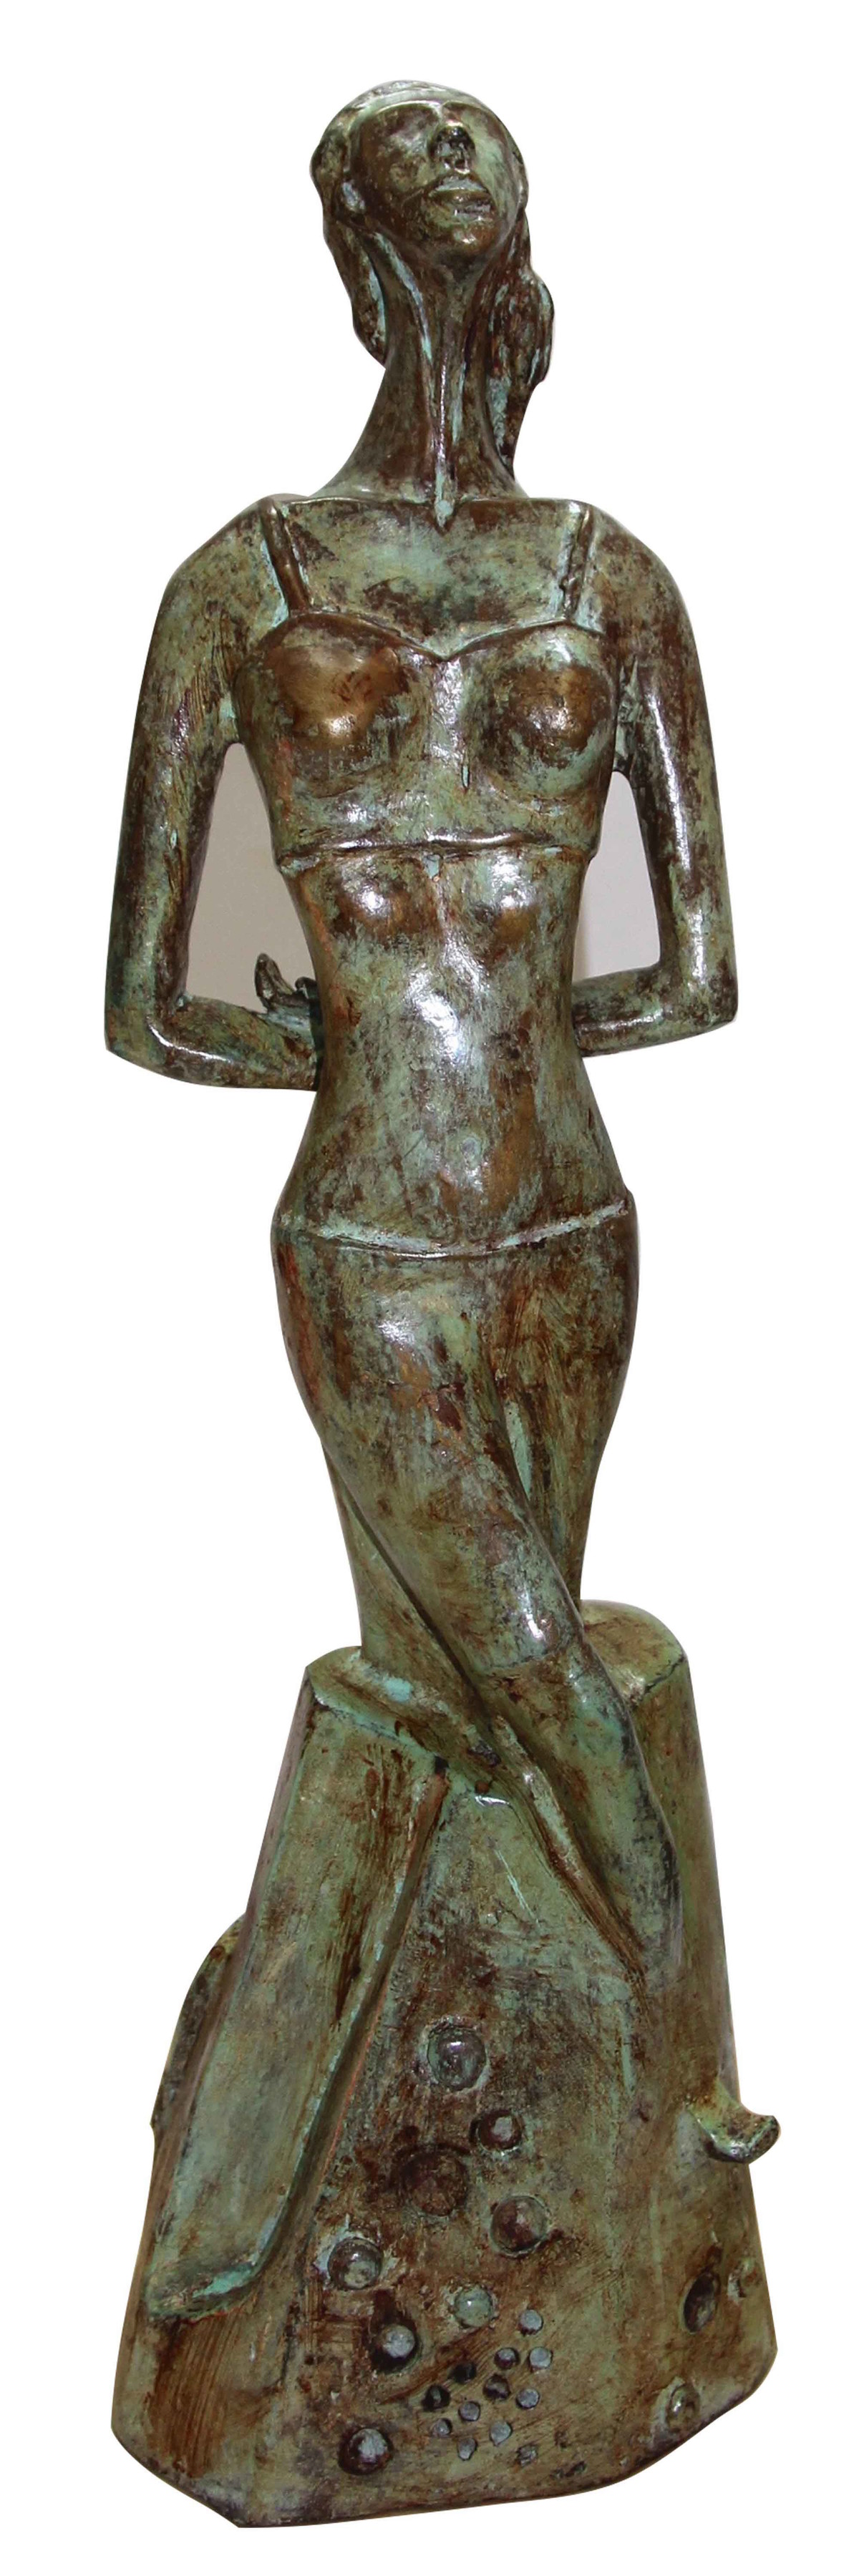 The New Journey(Single Woman) by Renuka Sondhi Gulati, Art Deco Sculpture | 3D, Bronze,